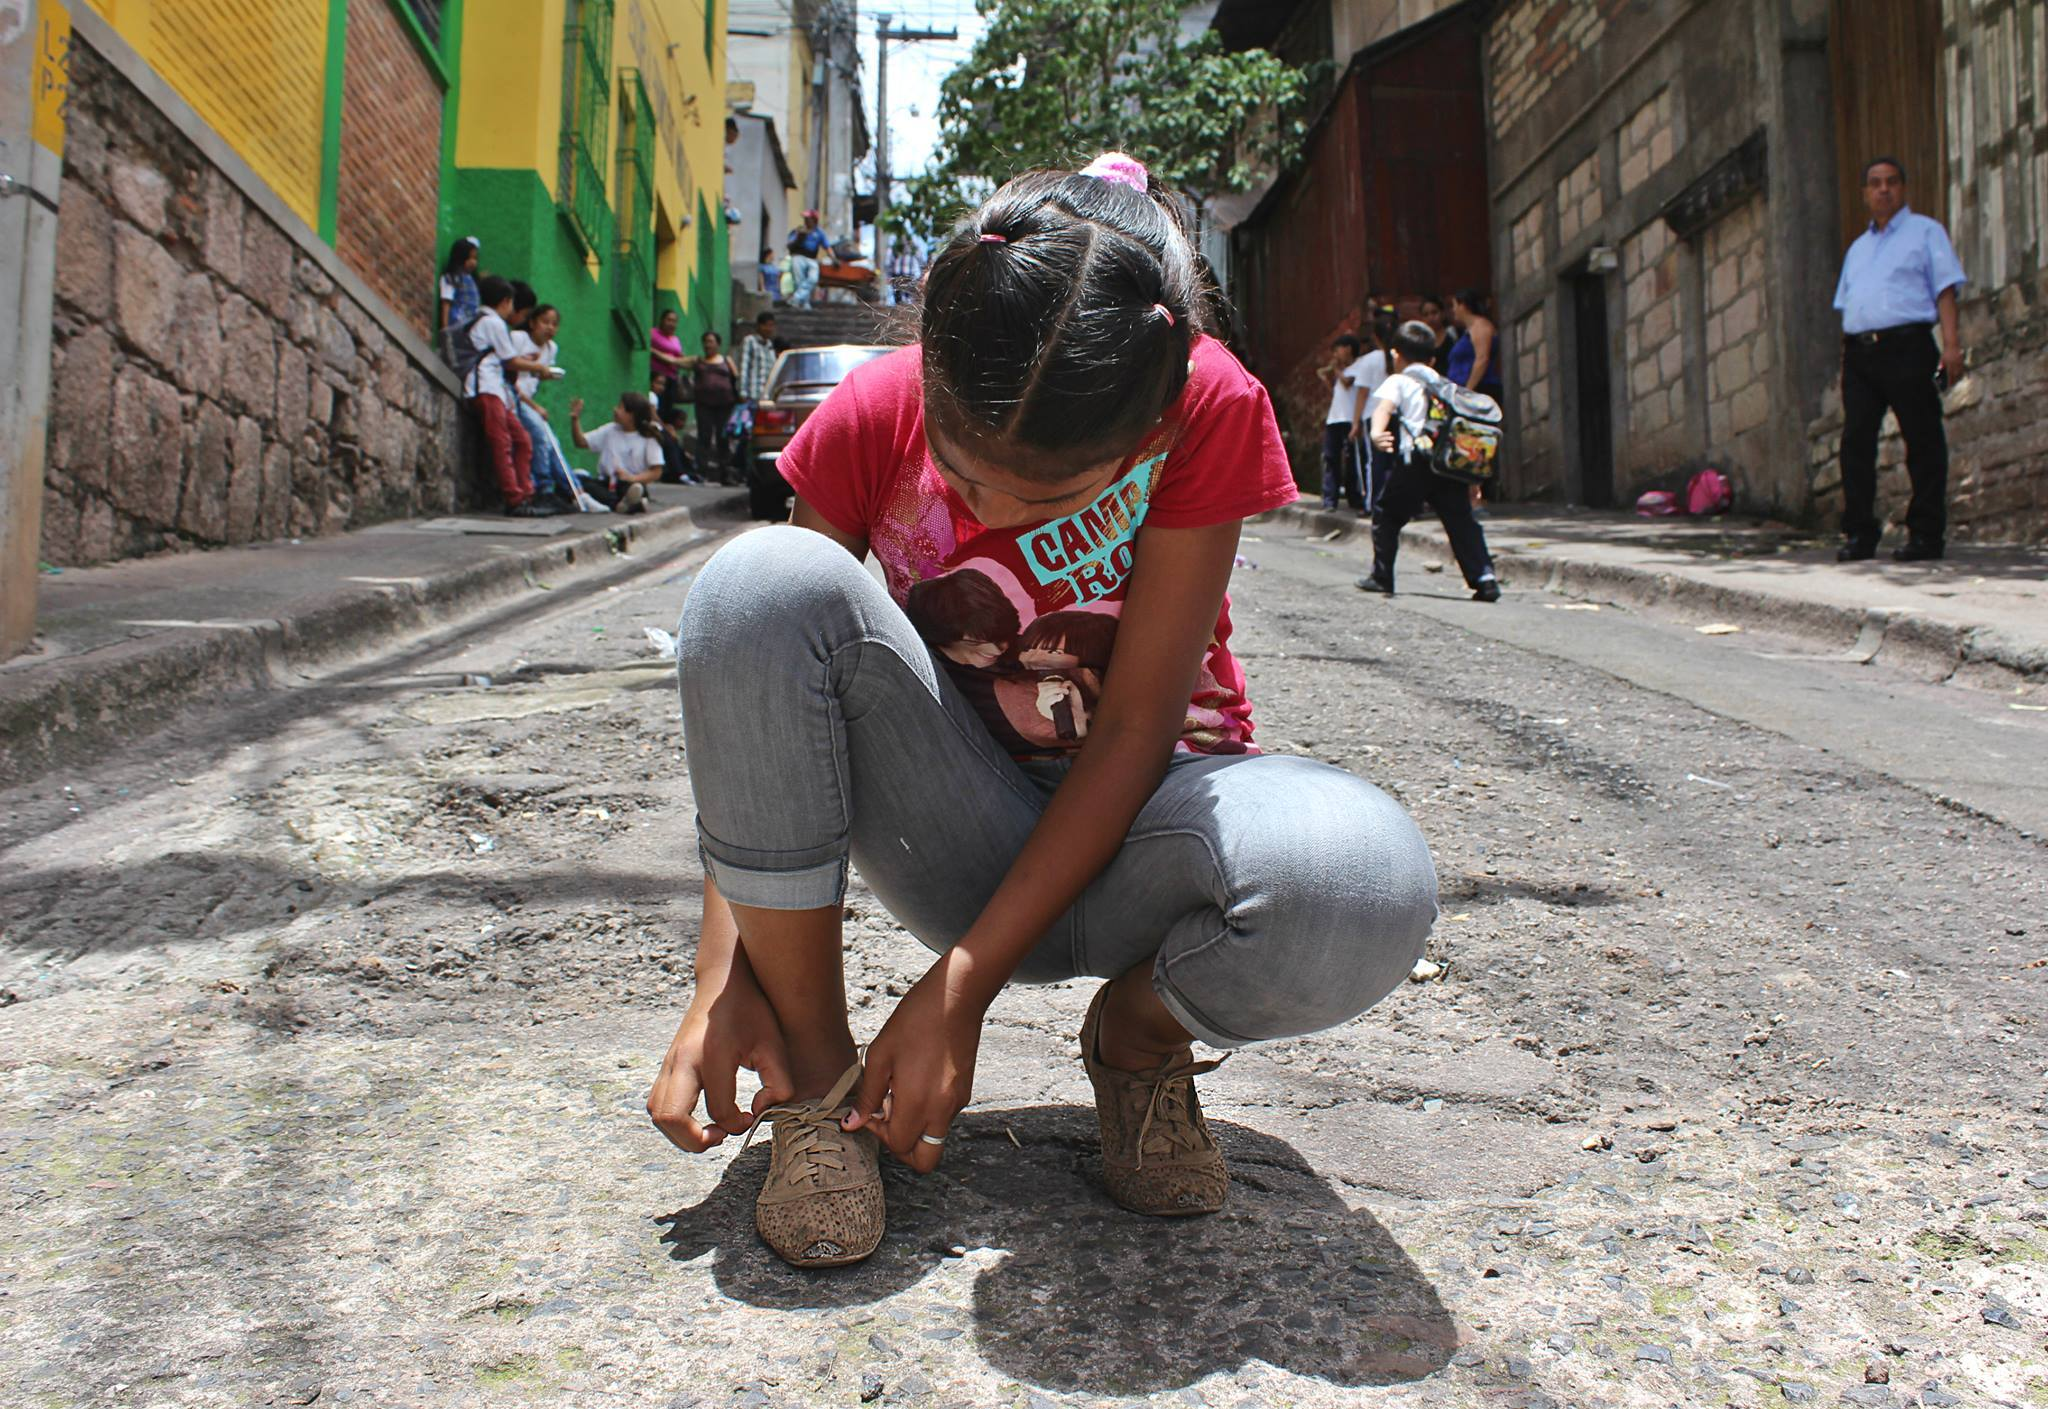 The writer, María José Burgos, took this photo in the dead-end street where her family's house is located and where she came across 11-year-old Michelle Flores on her way to school. (María José Burgos/CBC)